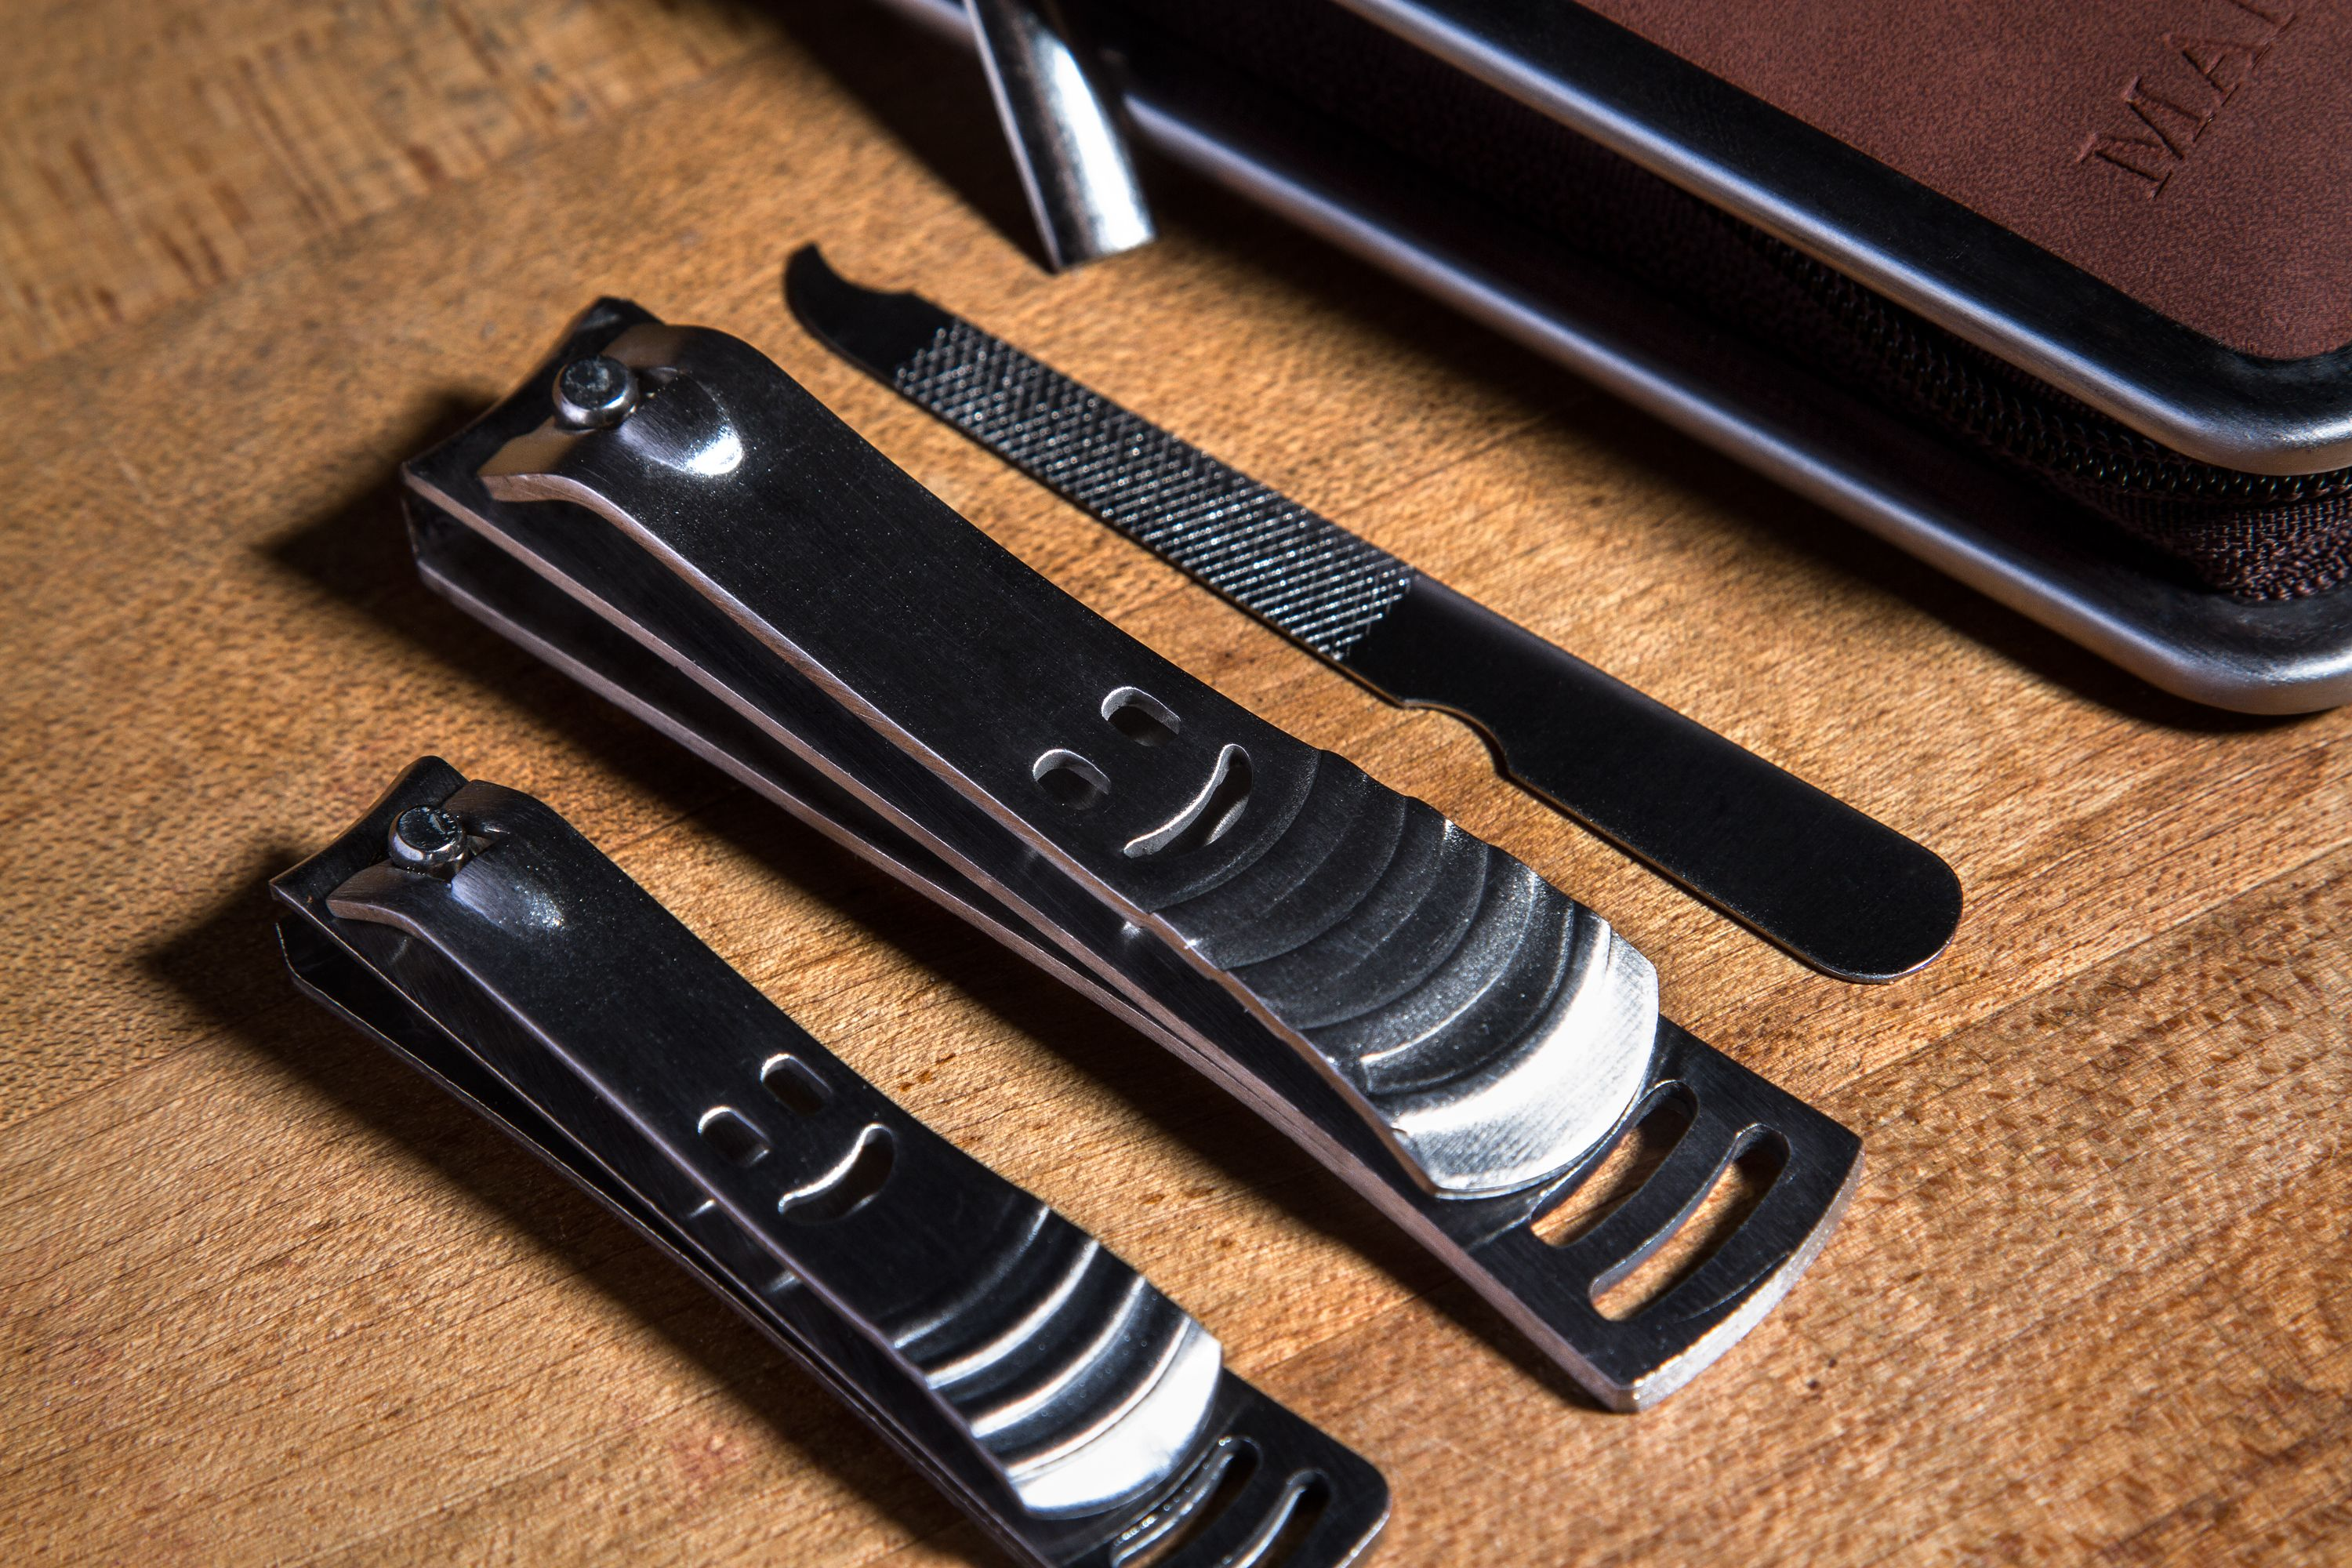 Stainless Steel Nail Clipper Set FOR GUYS - No more digging through ...